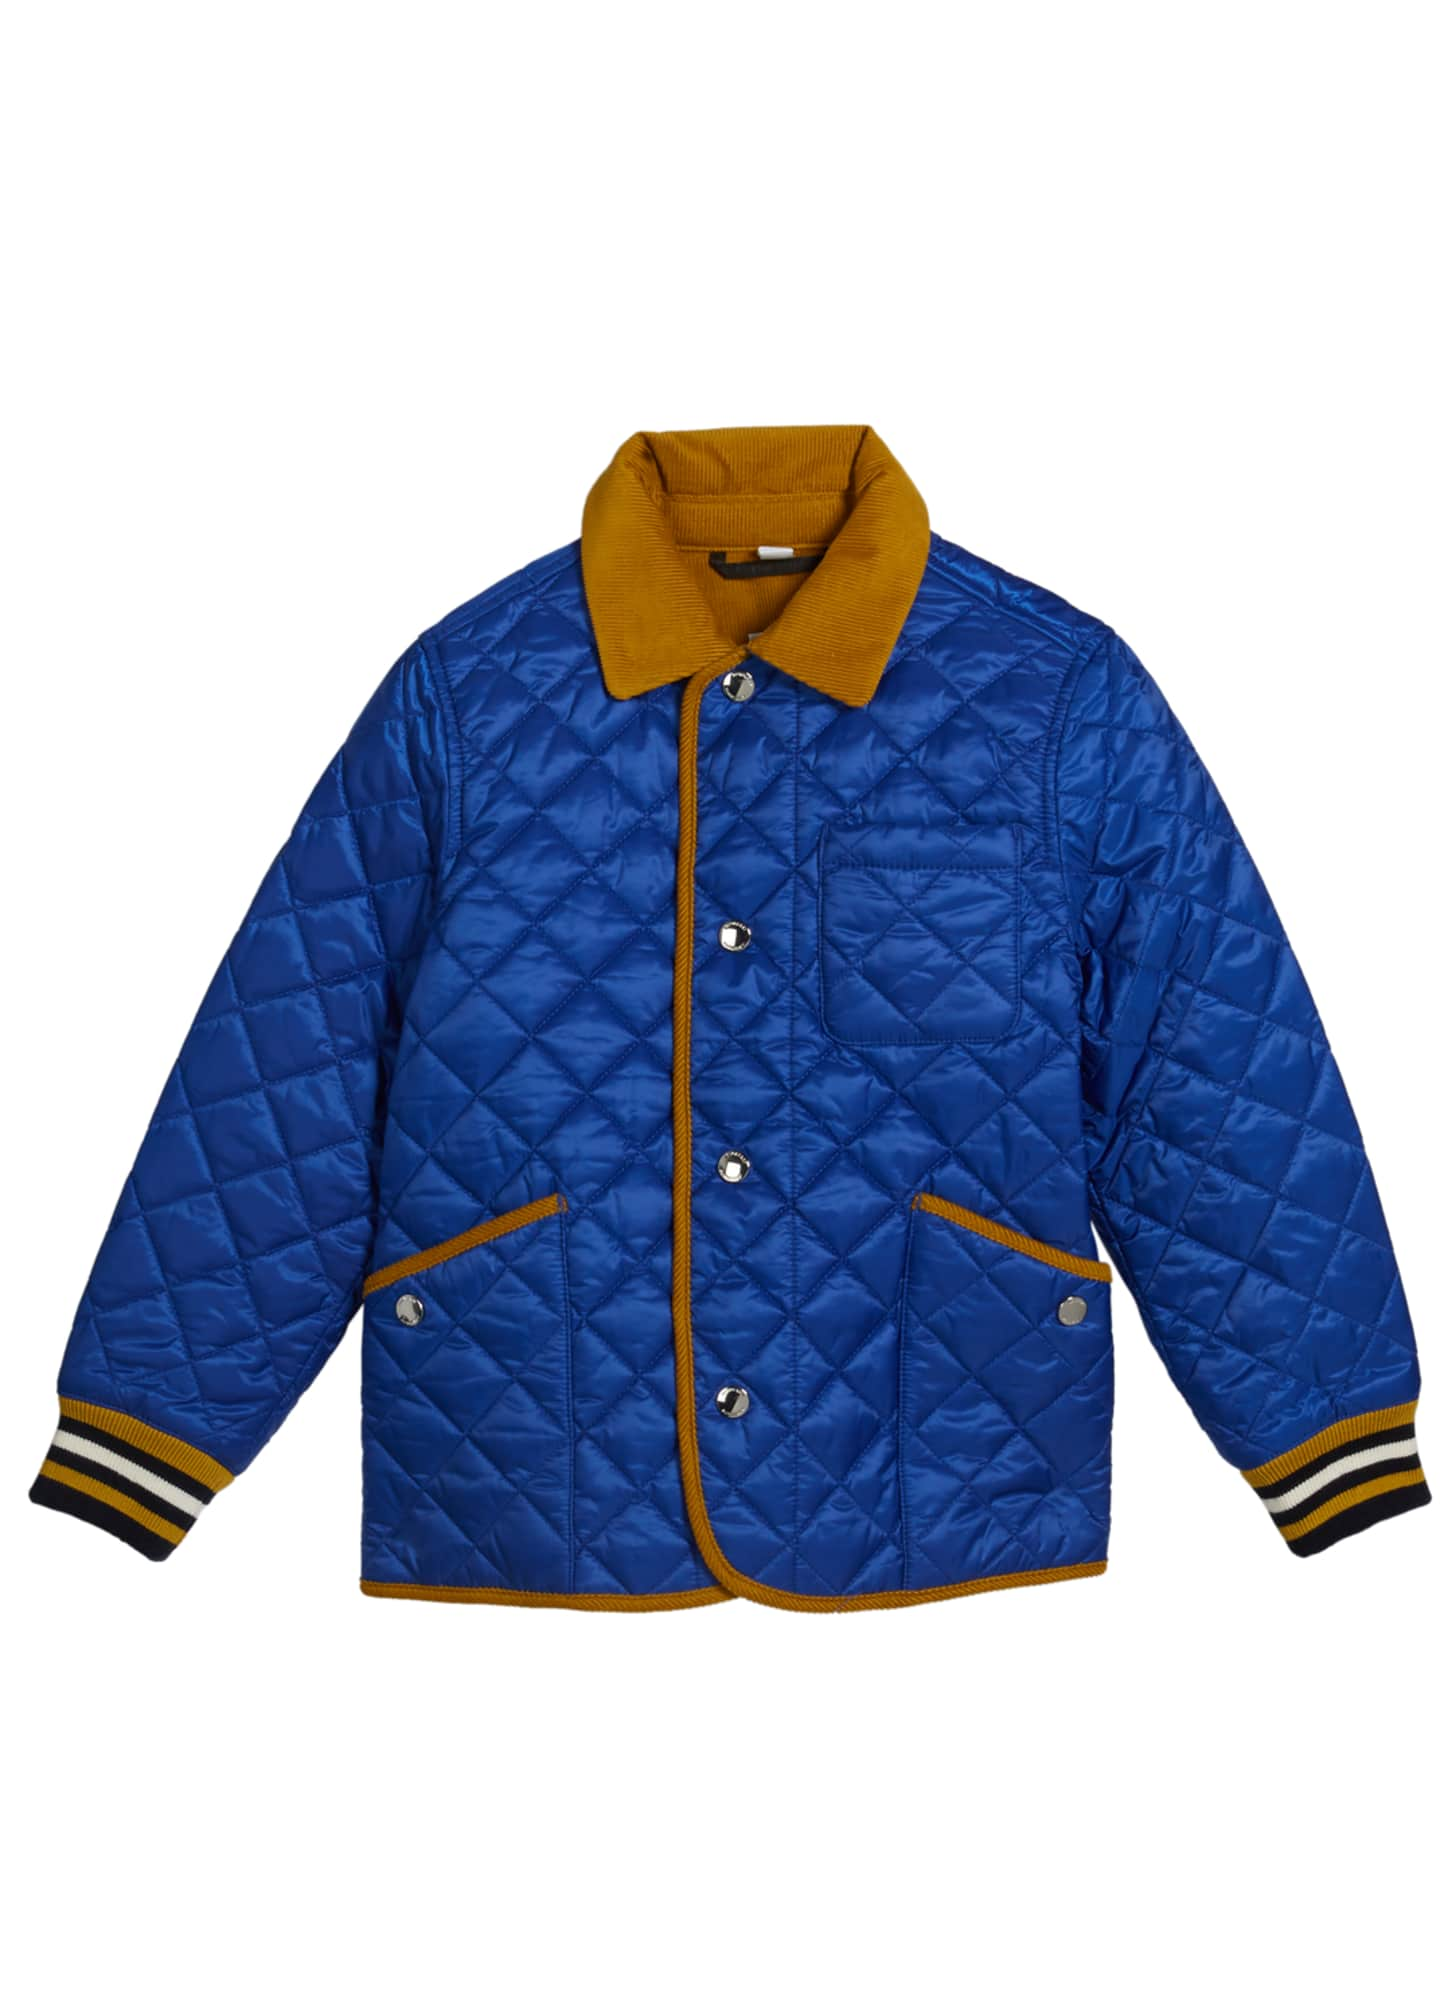 Burberry Boy's Cluford Quilted Jacket w/ Corduroy Trim,